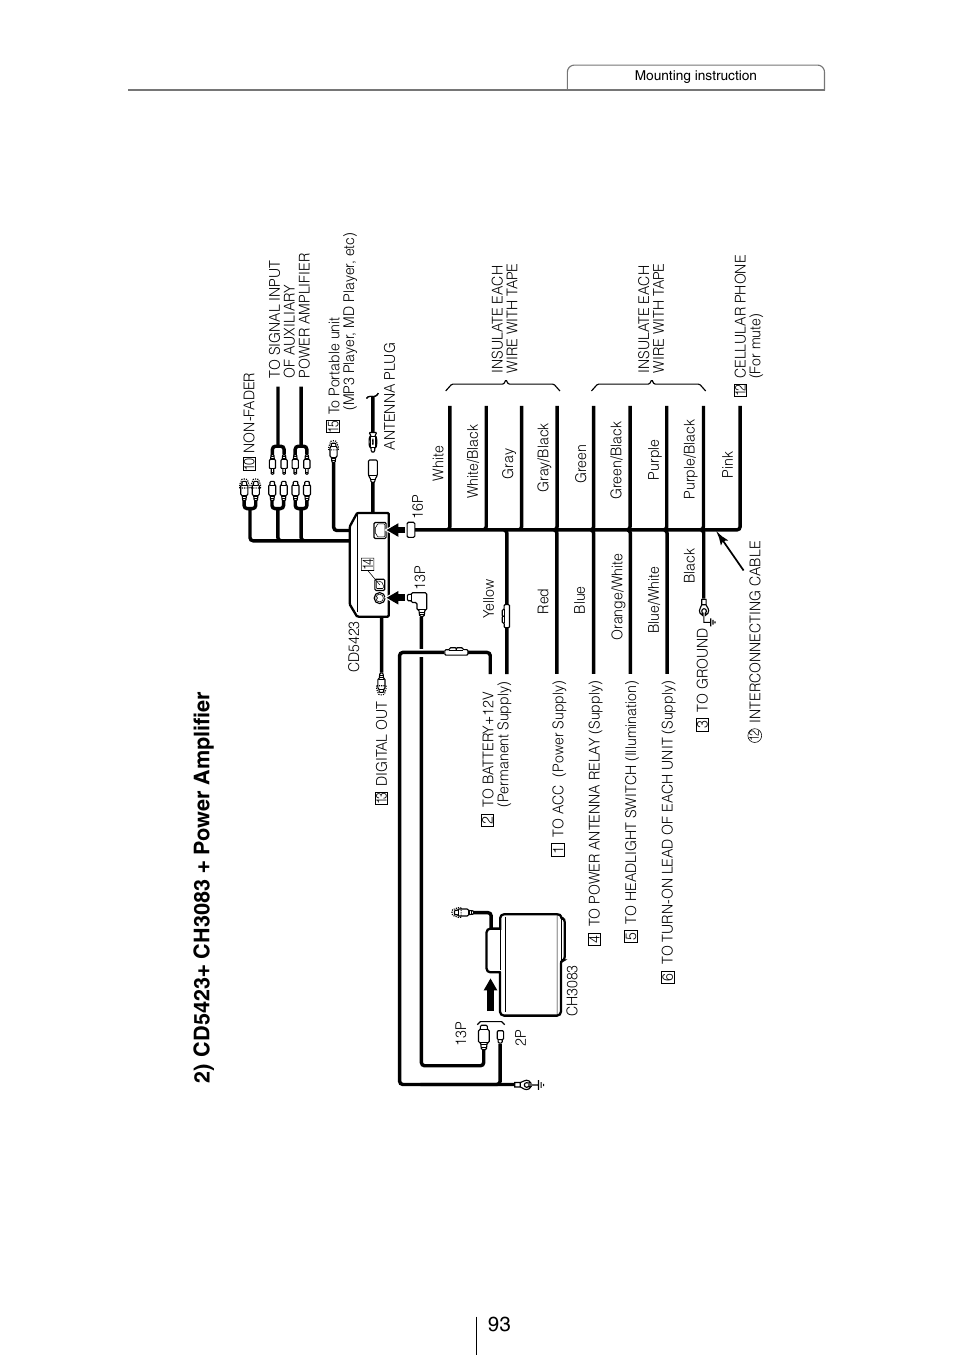 A145F3 Eclipse Model Cd5423 Wiring Diagram | Wiring LibraryWiring Library